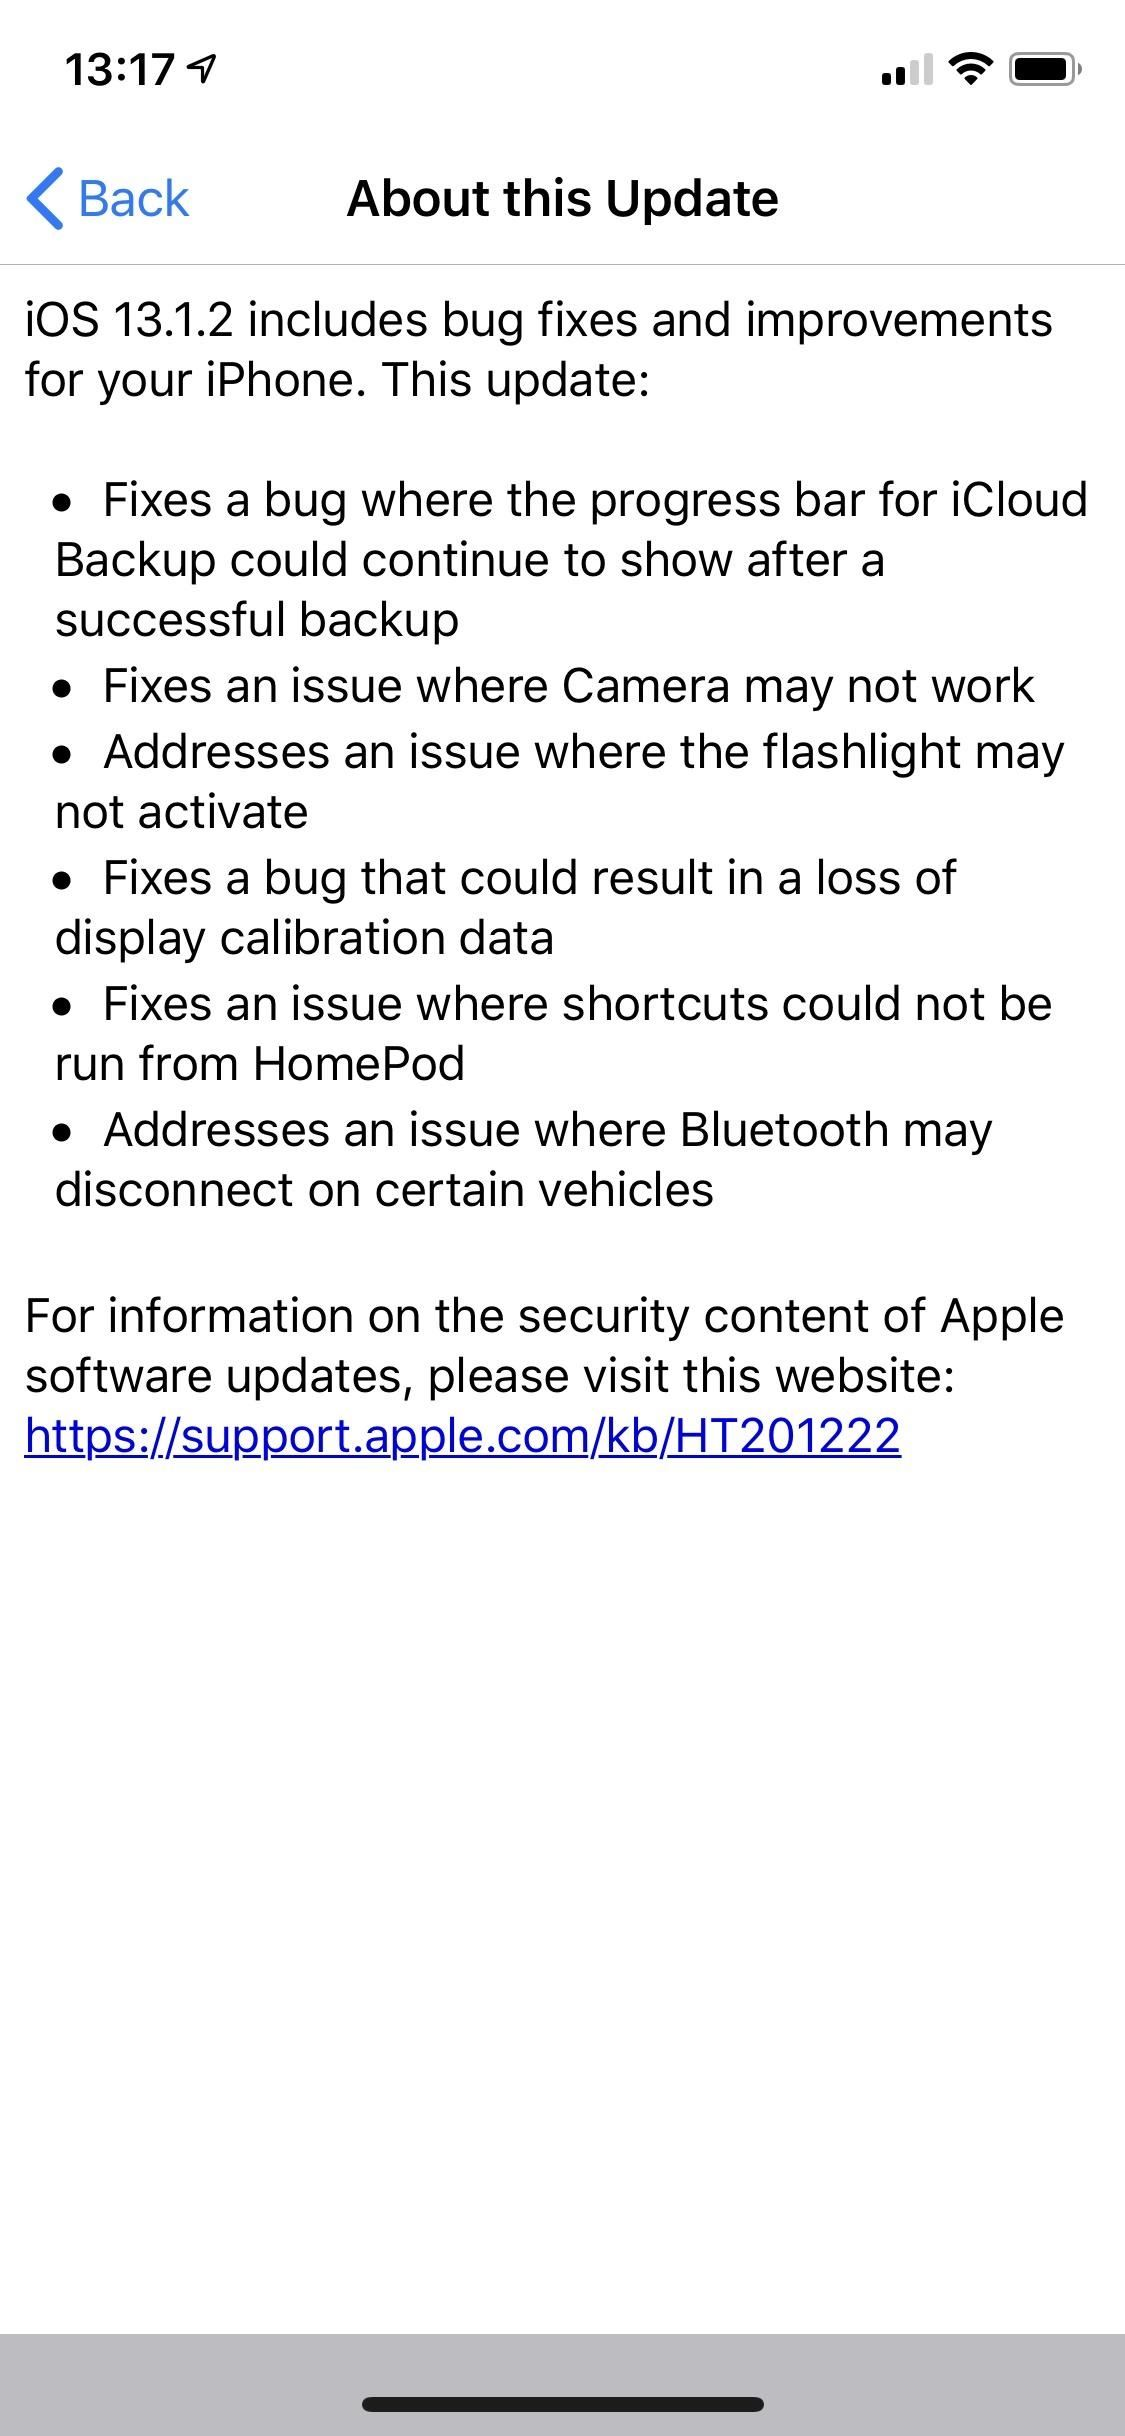 Apple Just Released iOS 13.1.2, Includes Fixes for Camera, Flashlight, iCloud Backup & More